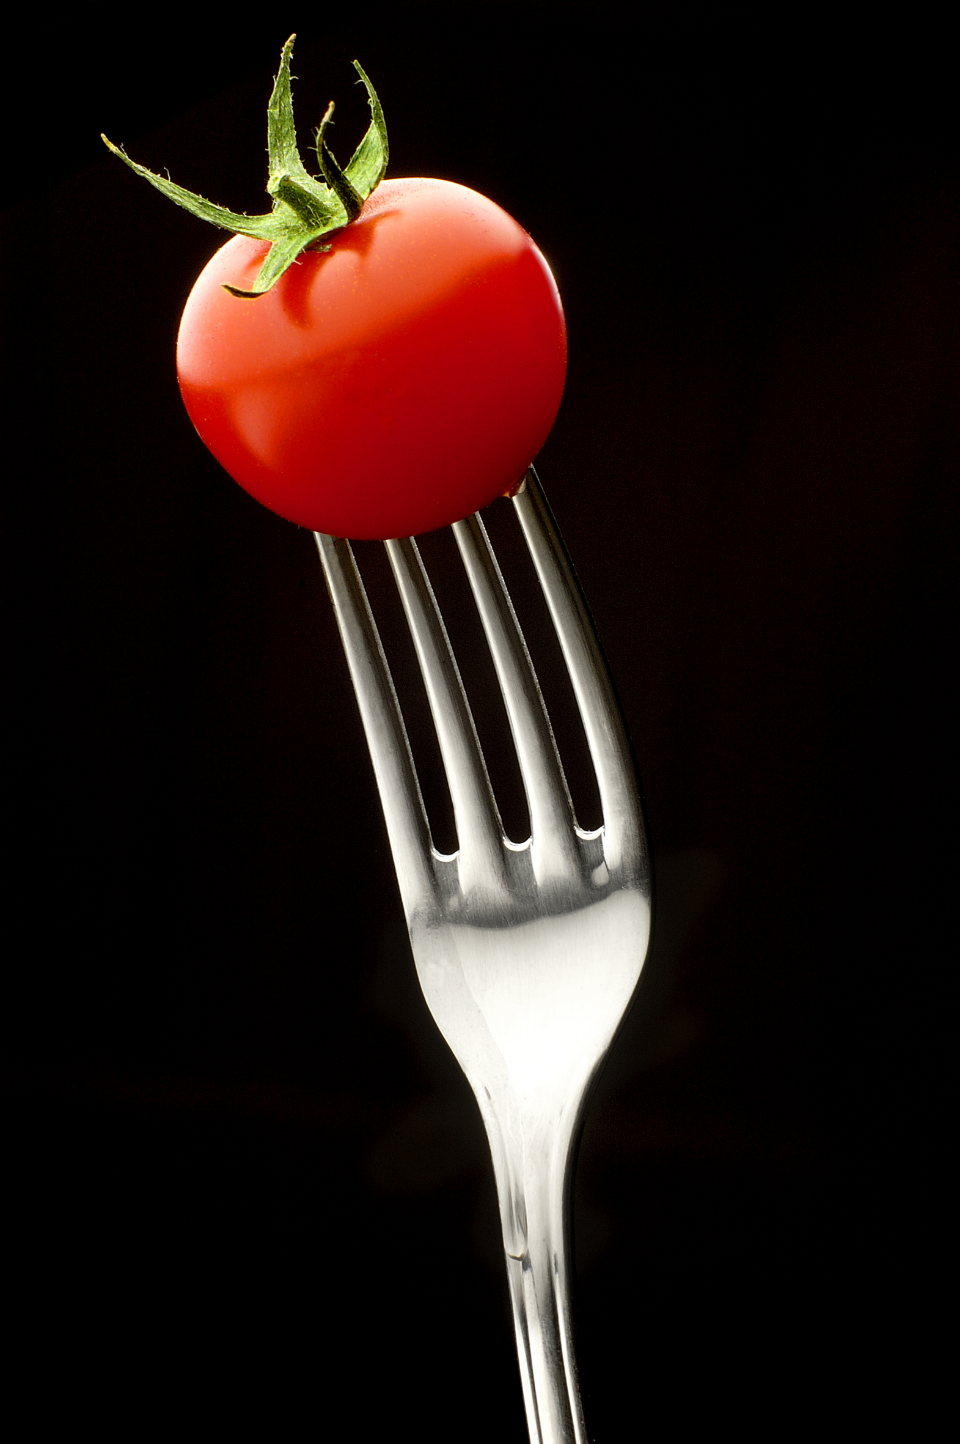 tomato fork red